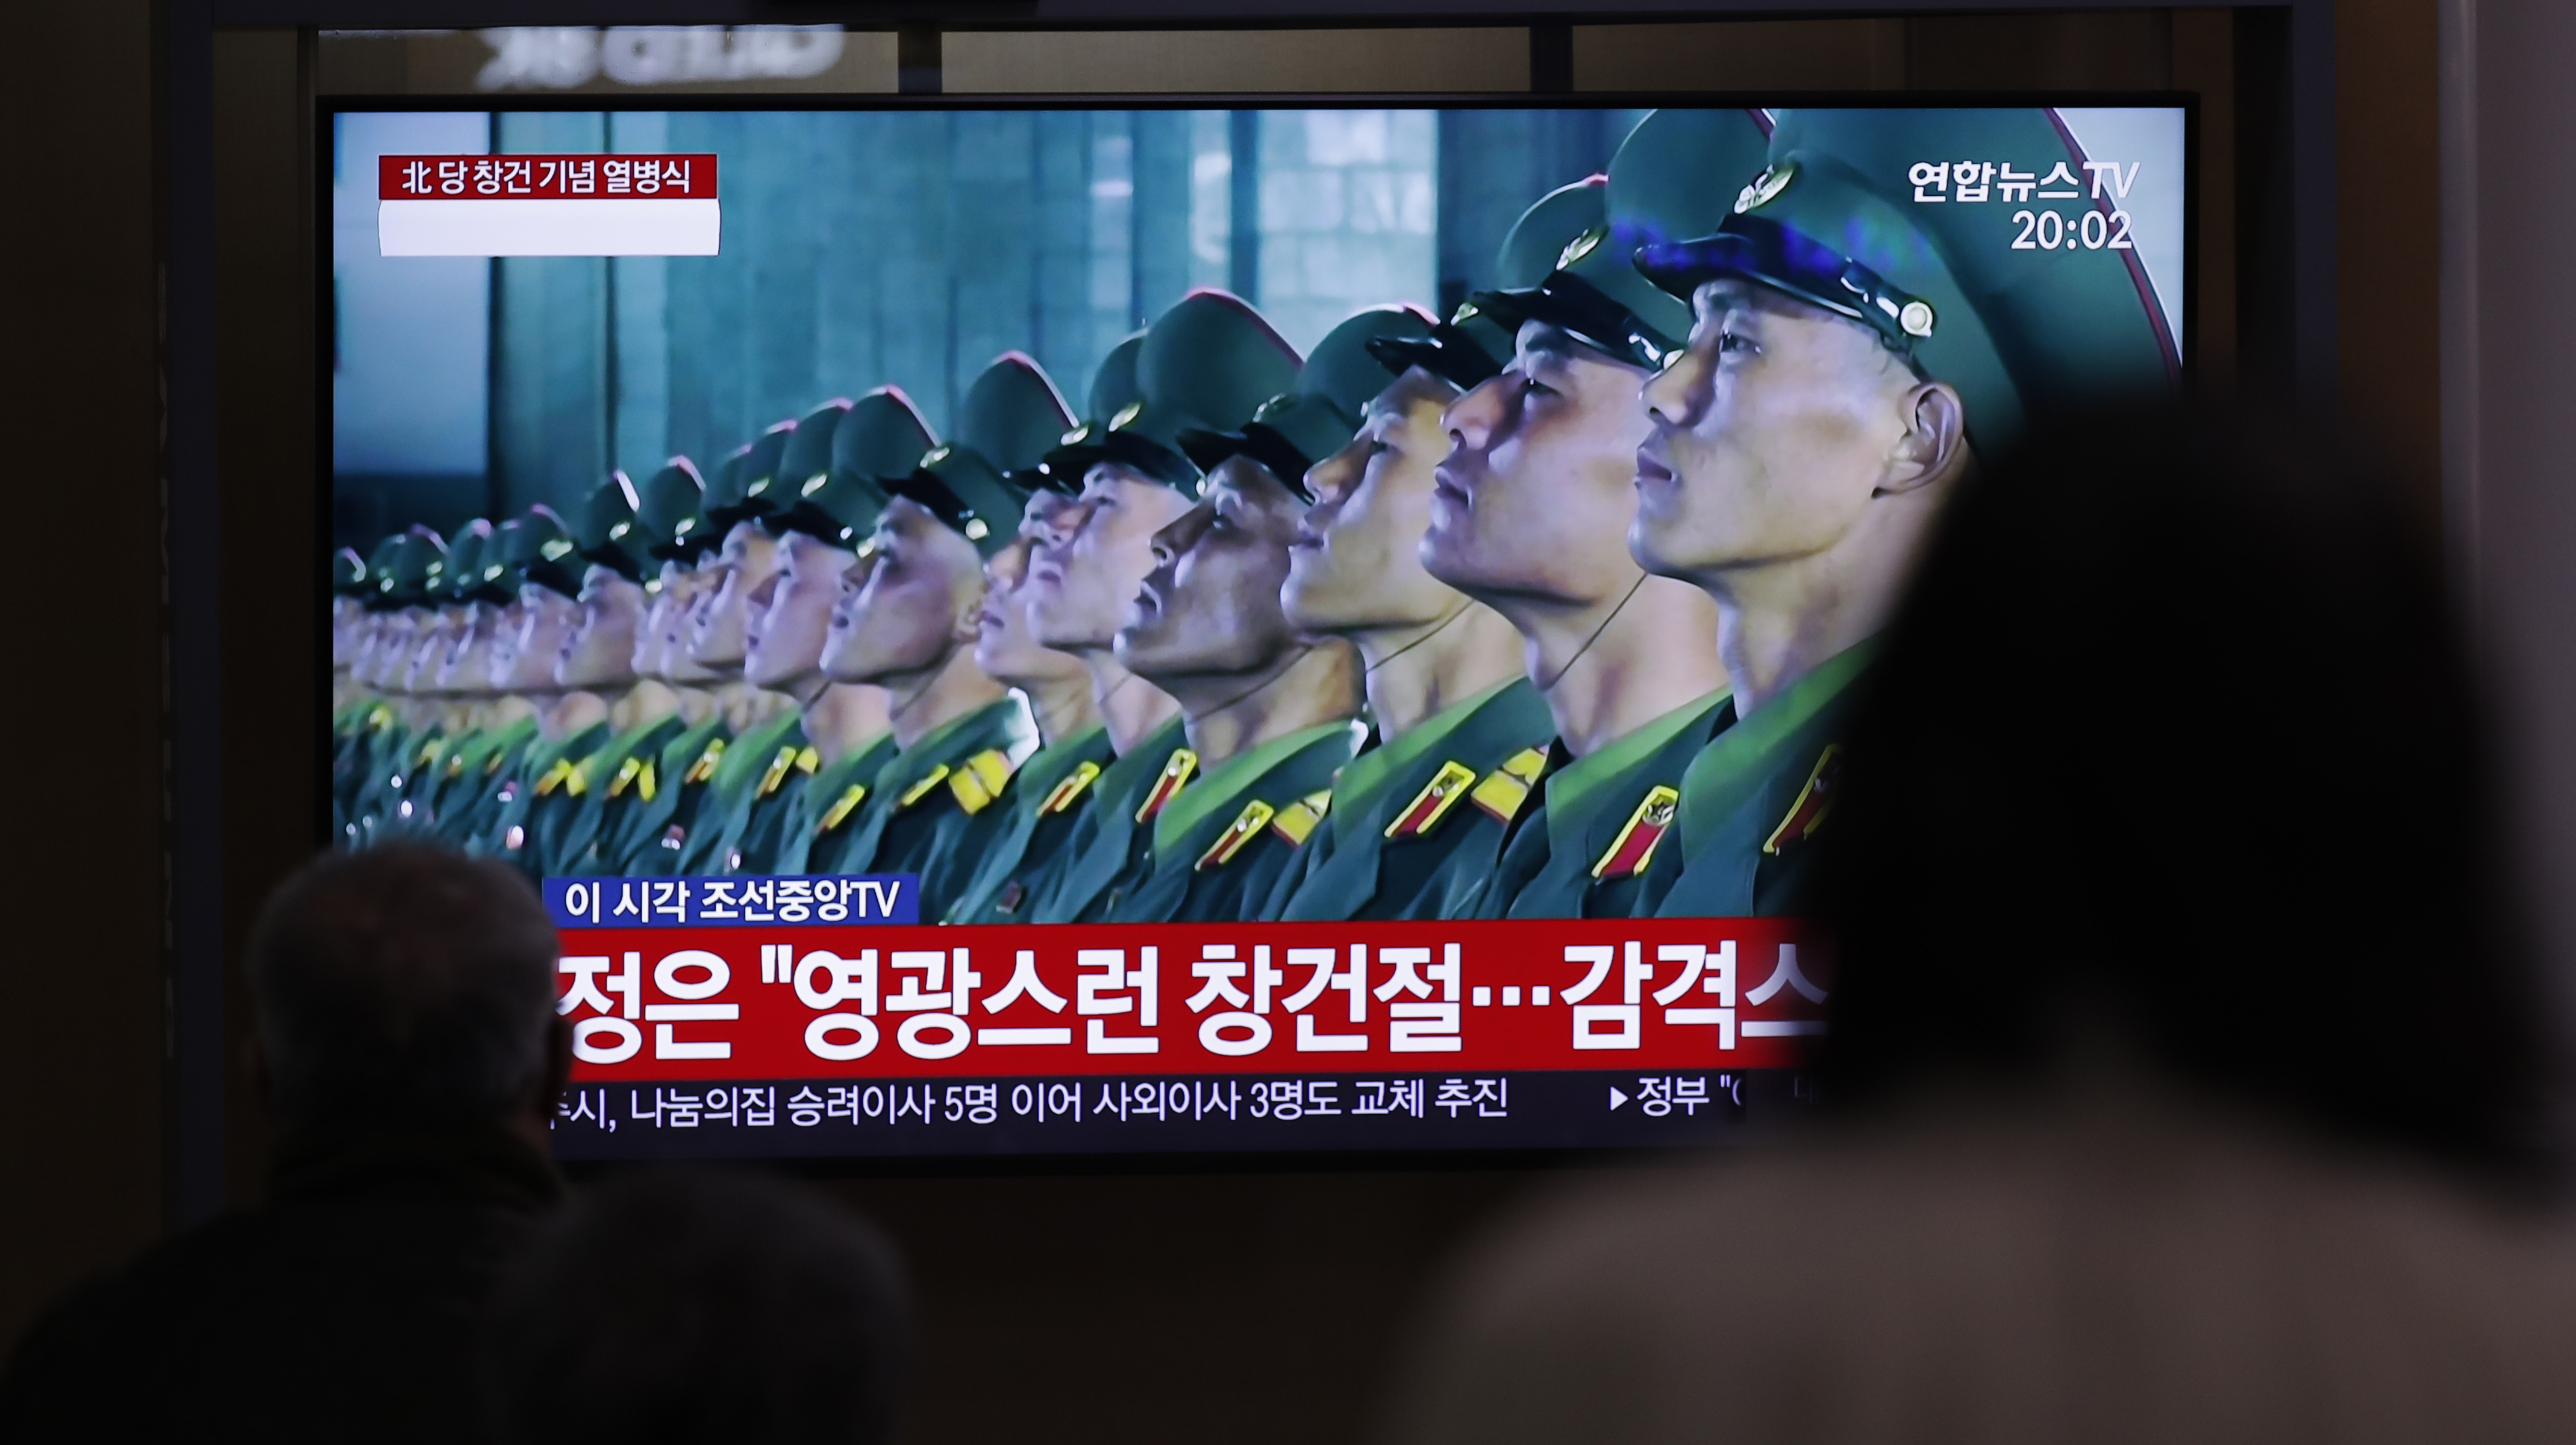 People wearing face masks watch a TV screen during a news program reporting about the ceremony to mark the 75th founding anniversary of the North Korea's ruling Workers' party, at the Seoul Railway Station in Seoul, South Korea, Saturday, Oct. 10, 2020. A part of letters read on the top